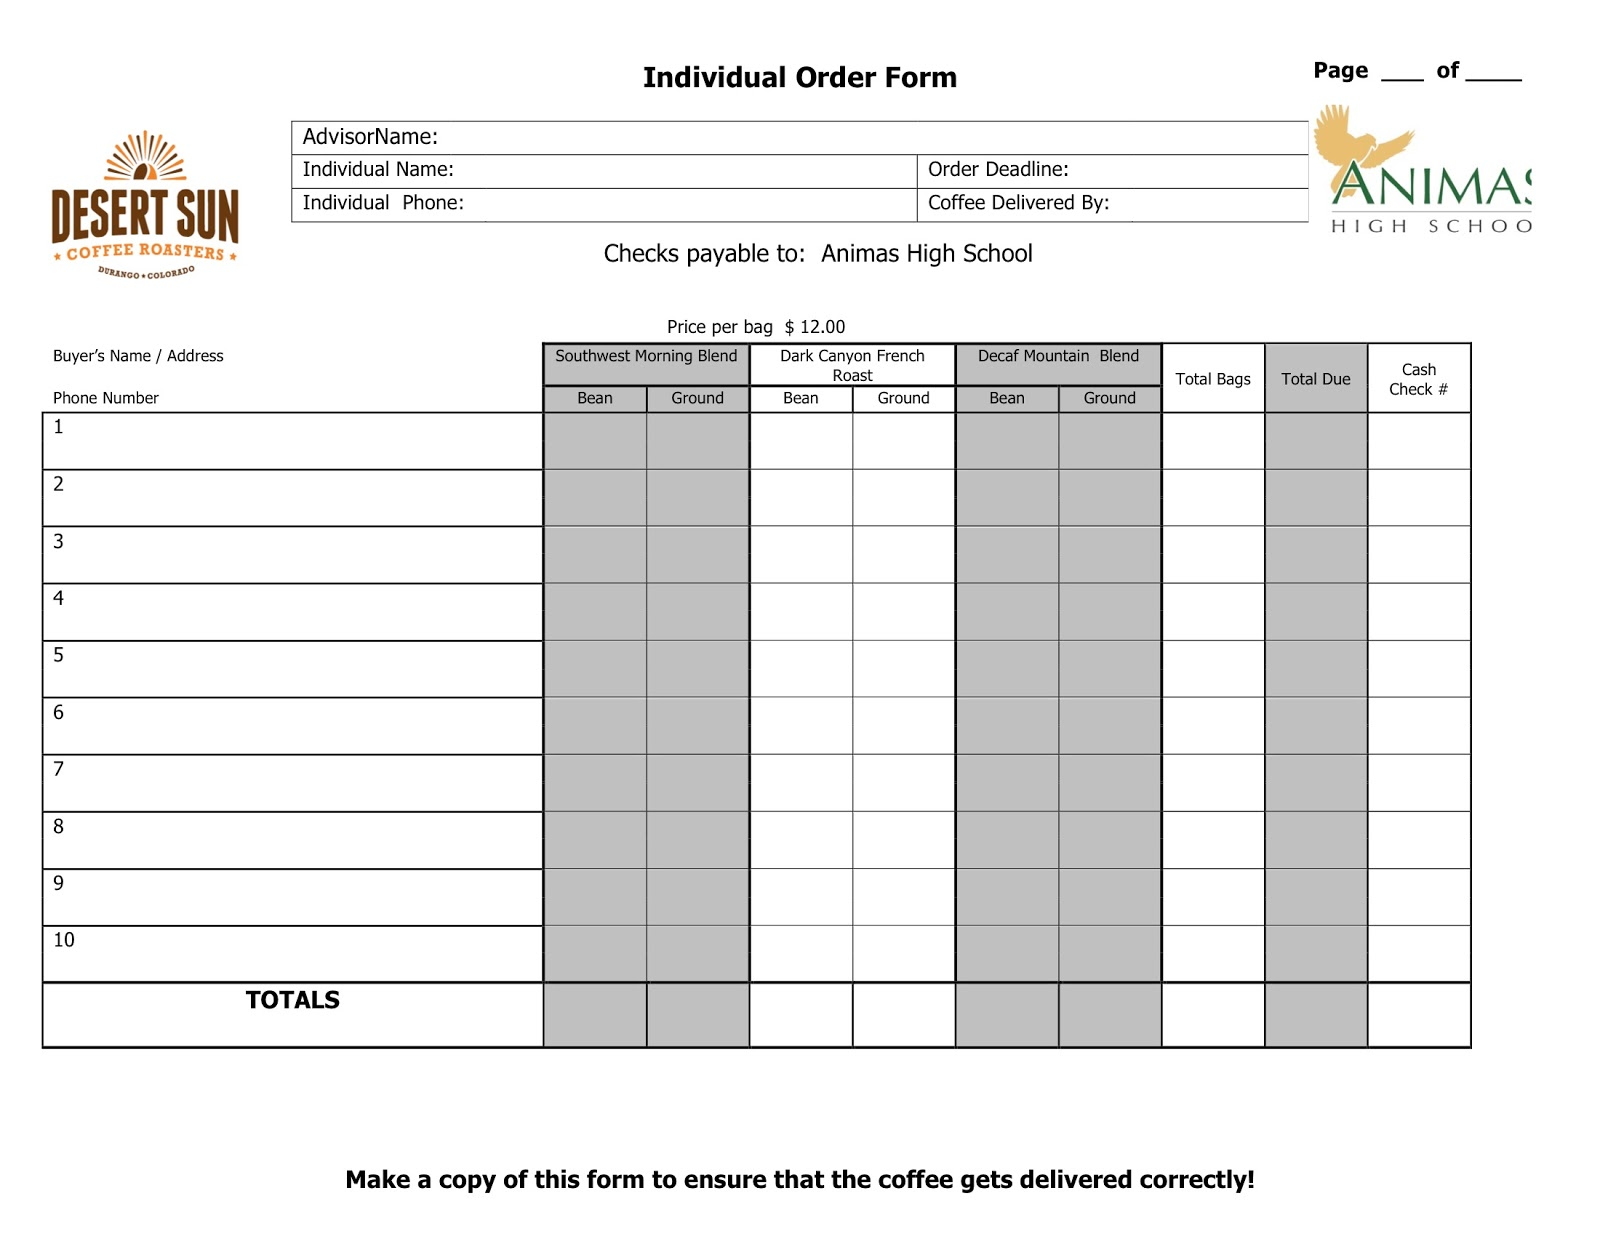 Animas High : Coffee Fundraising Order Forms 2013 on fundraiser application form, popcornopolis fundraiser form, grocery list form, statement form, satin hands fundraiser form, fundraiser flyer, 1099 tax form, fundraiser catalog,